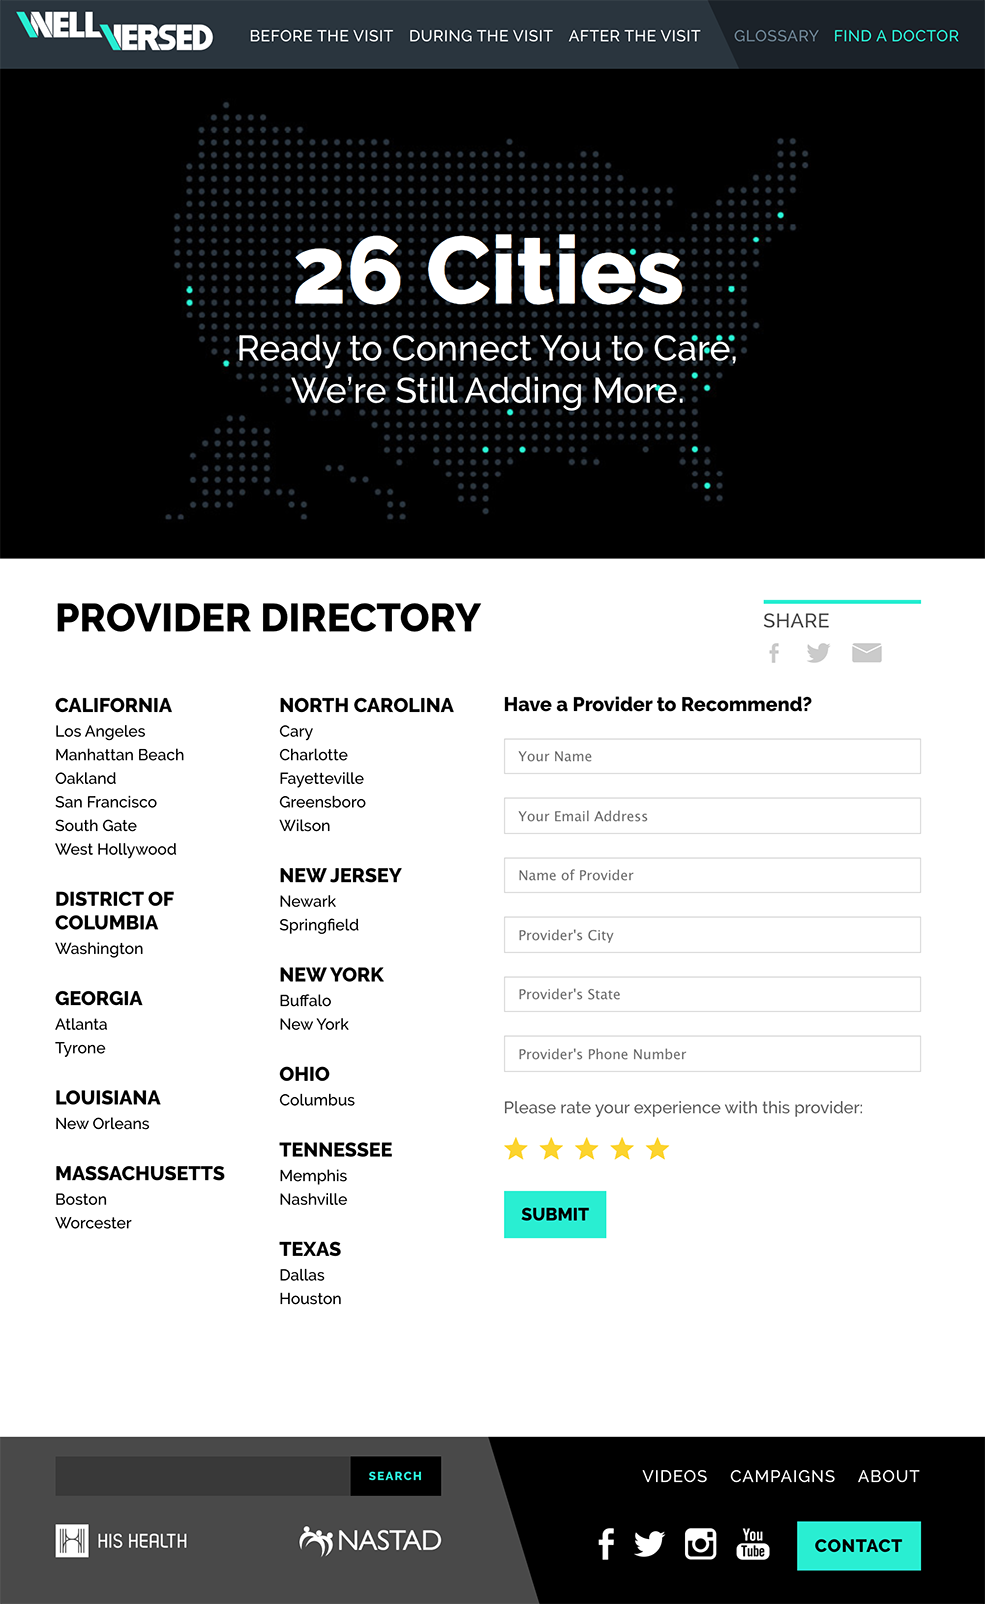 screencapture-wellversed-org-provider-directory-2018-12-06-14_47_13.png